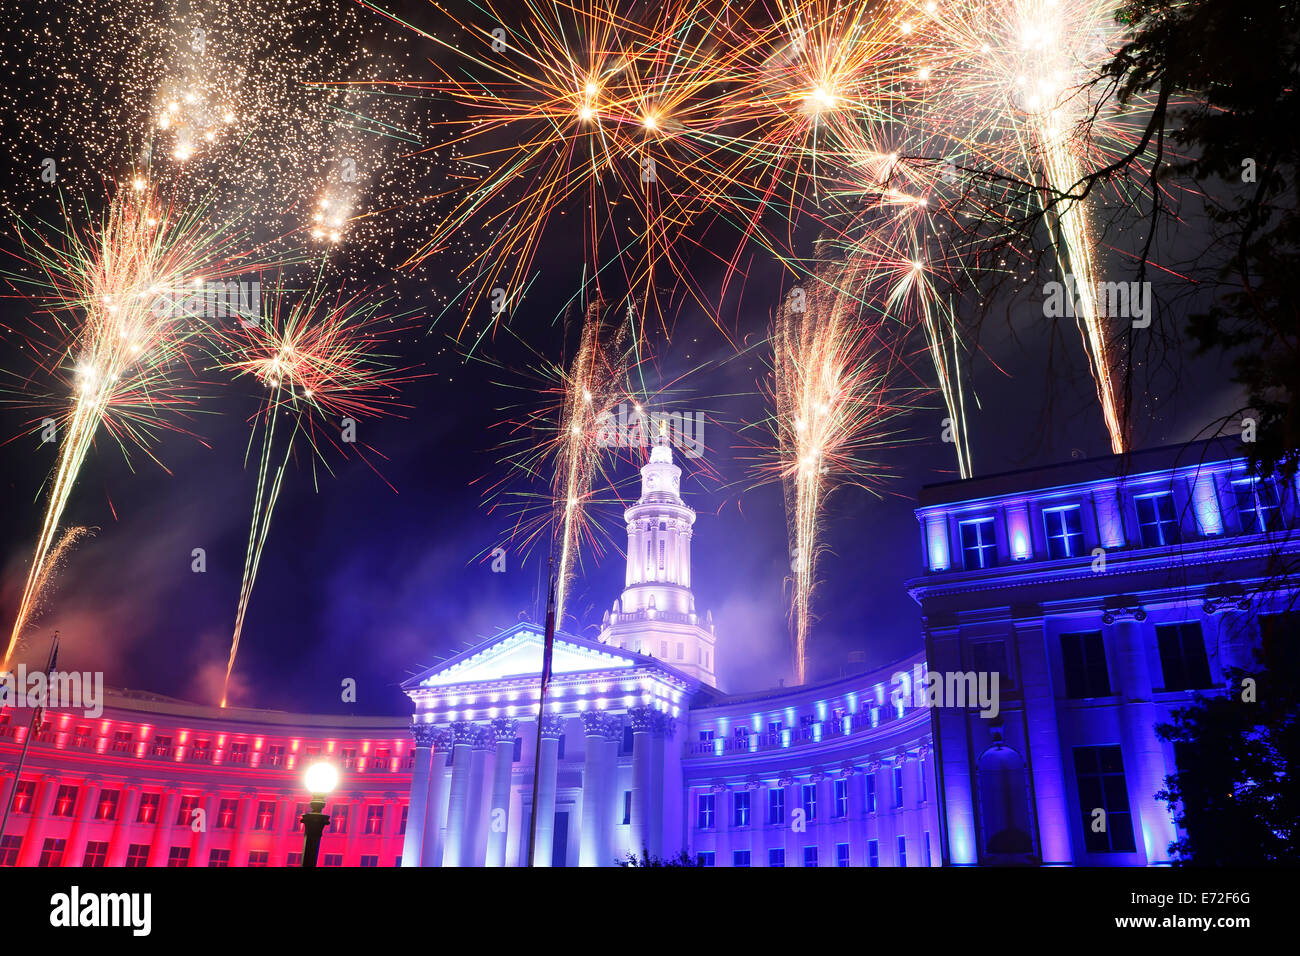 Denver City & County Building and fireworks, Independence Eve Celebration, Denver, Colorado USA - Stock Image